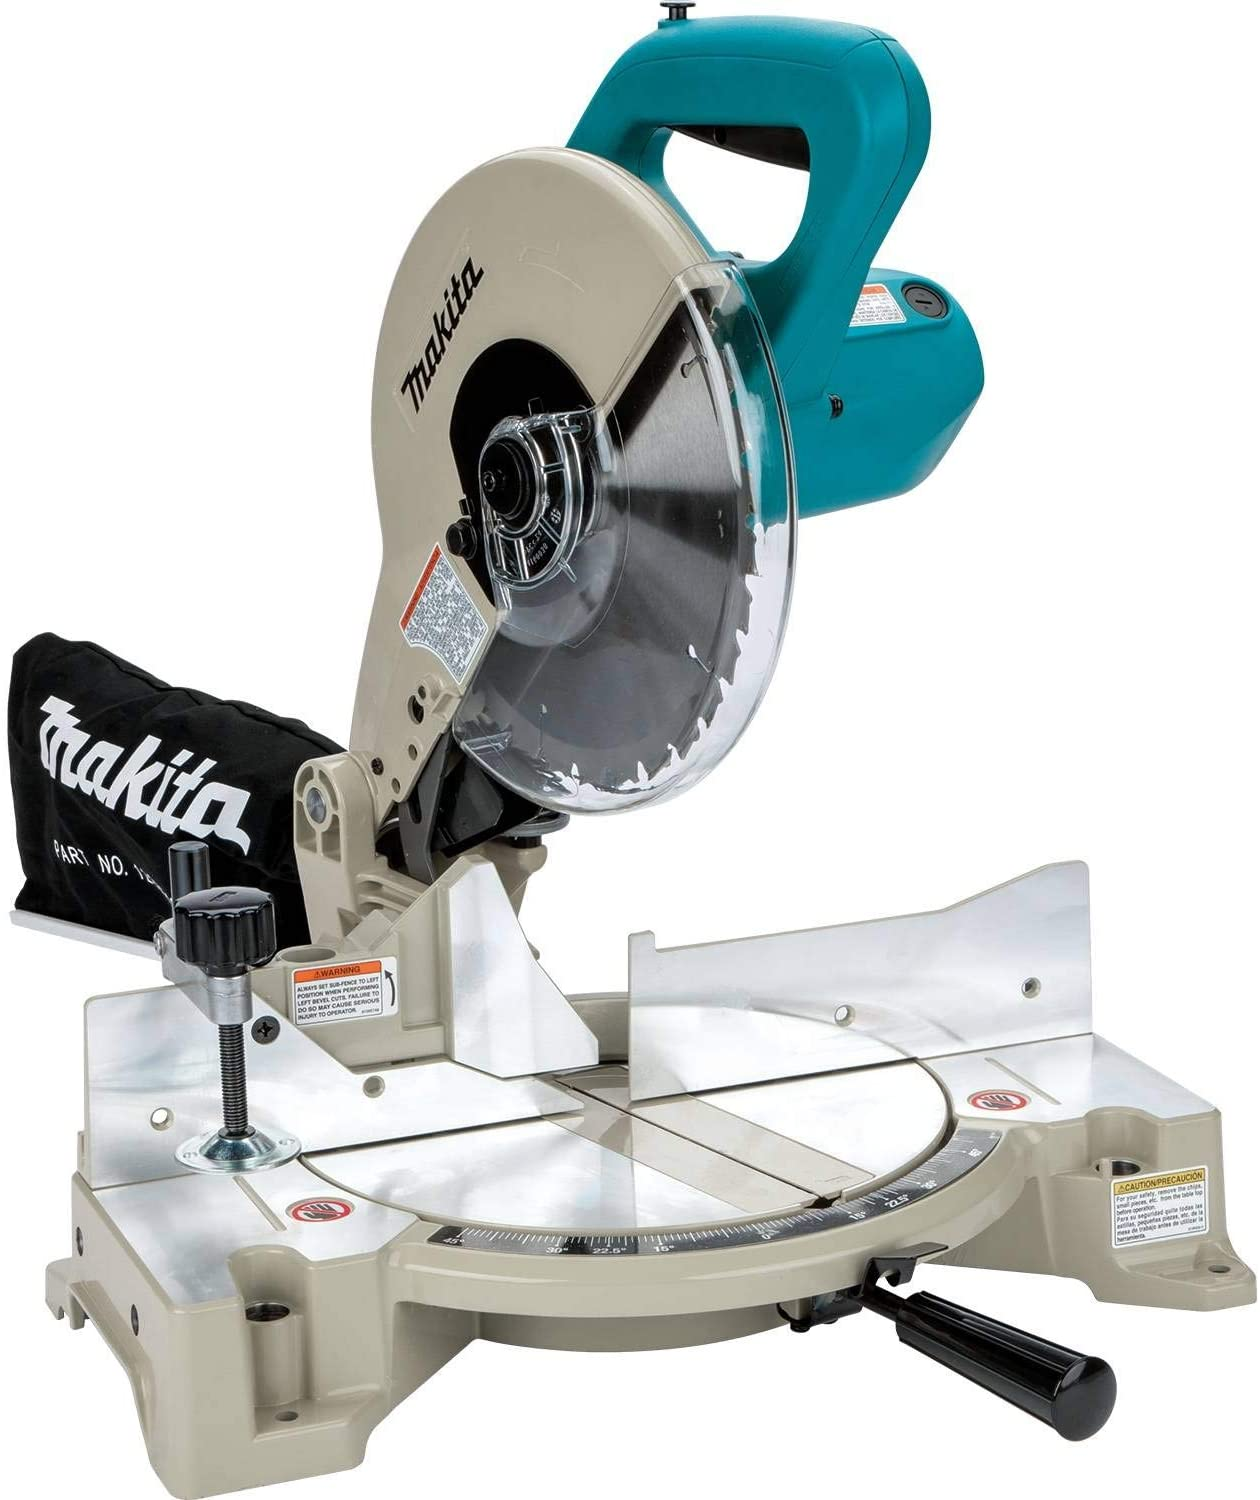 3. Makita Compound Miter Saw